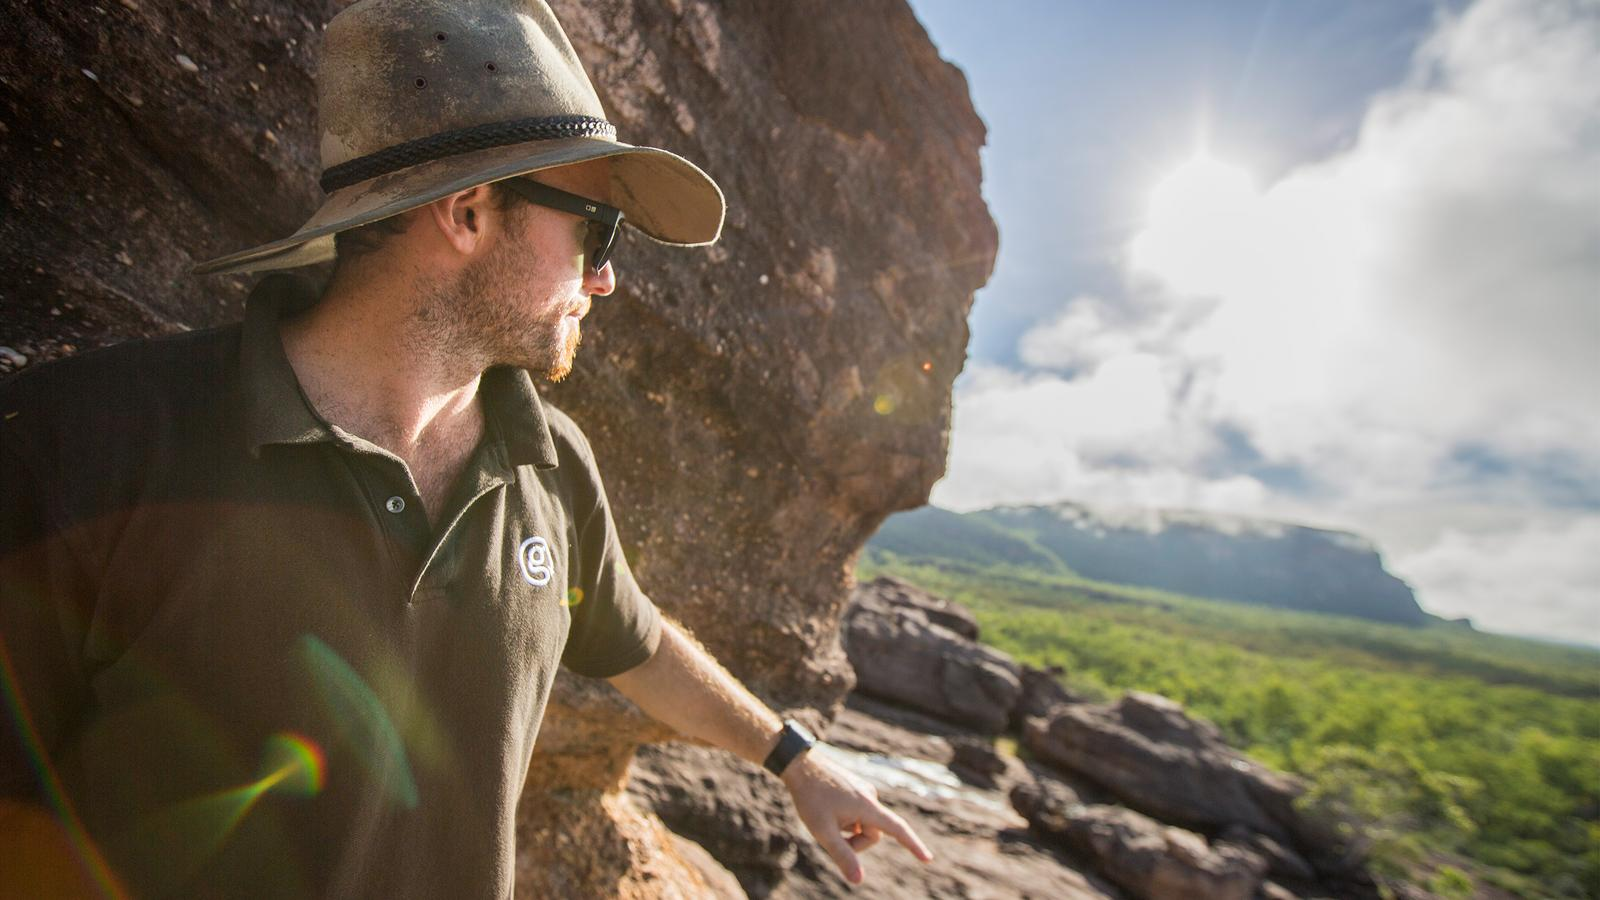 Guide looks toward beautiful green scenery in Kakadu National Park, Australia